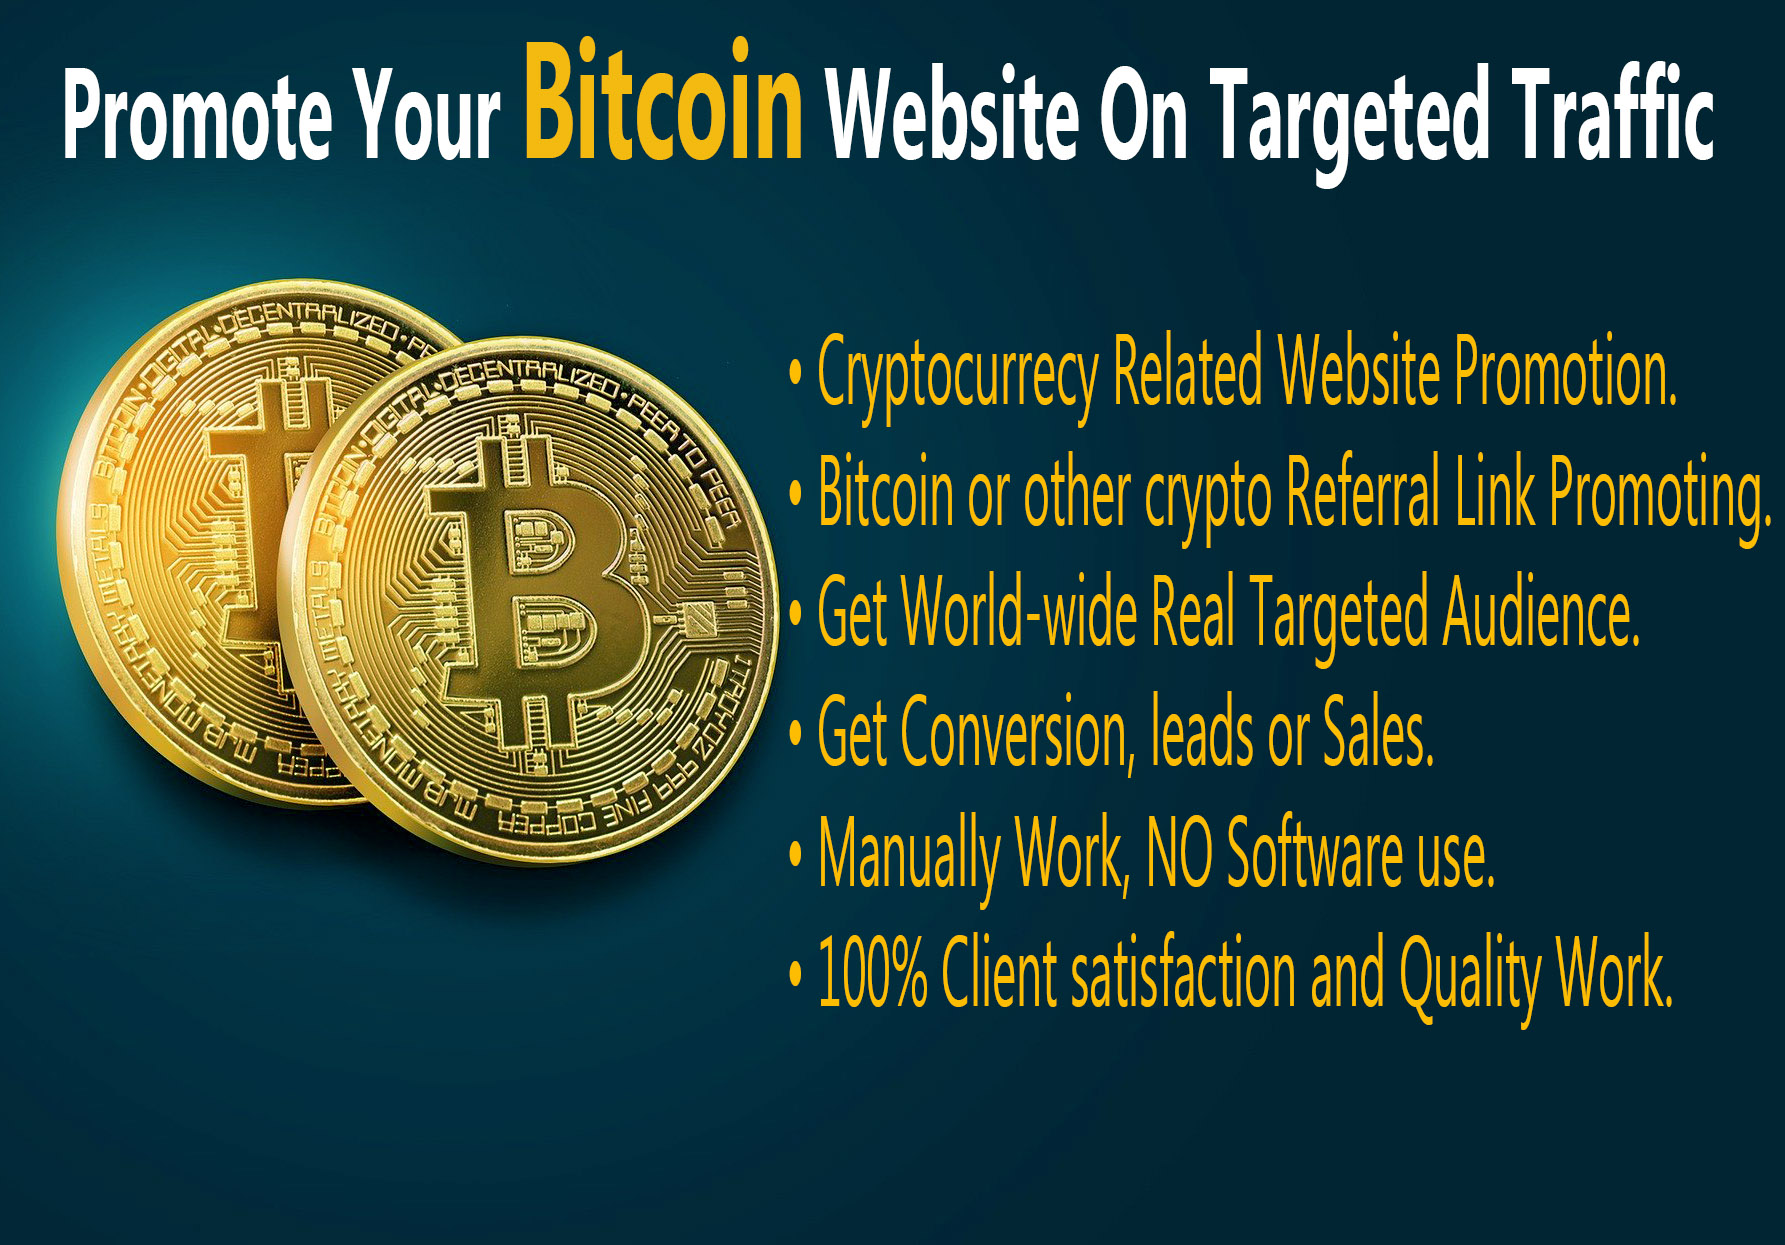 Promote Your Bitcoin Website On Targeted Traffic